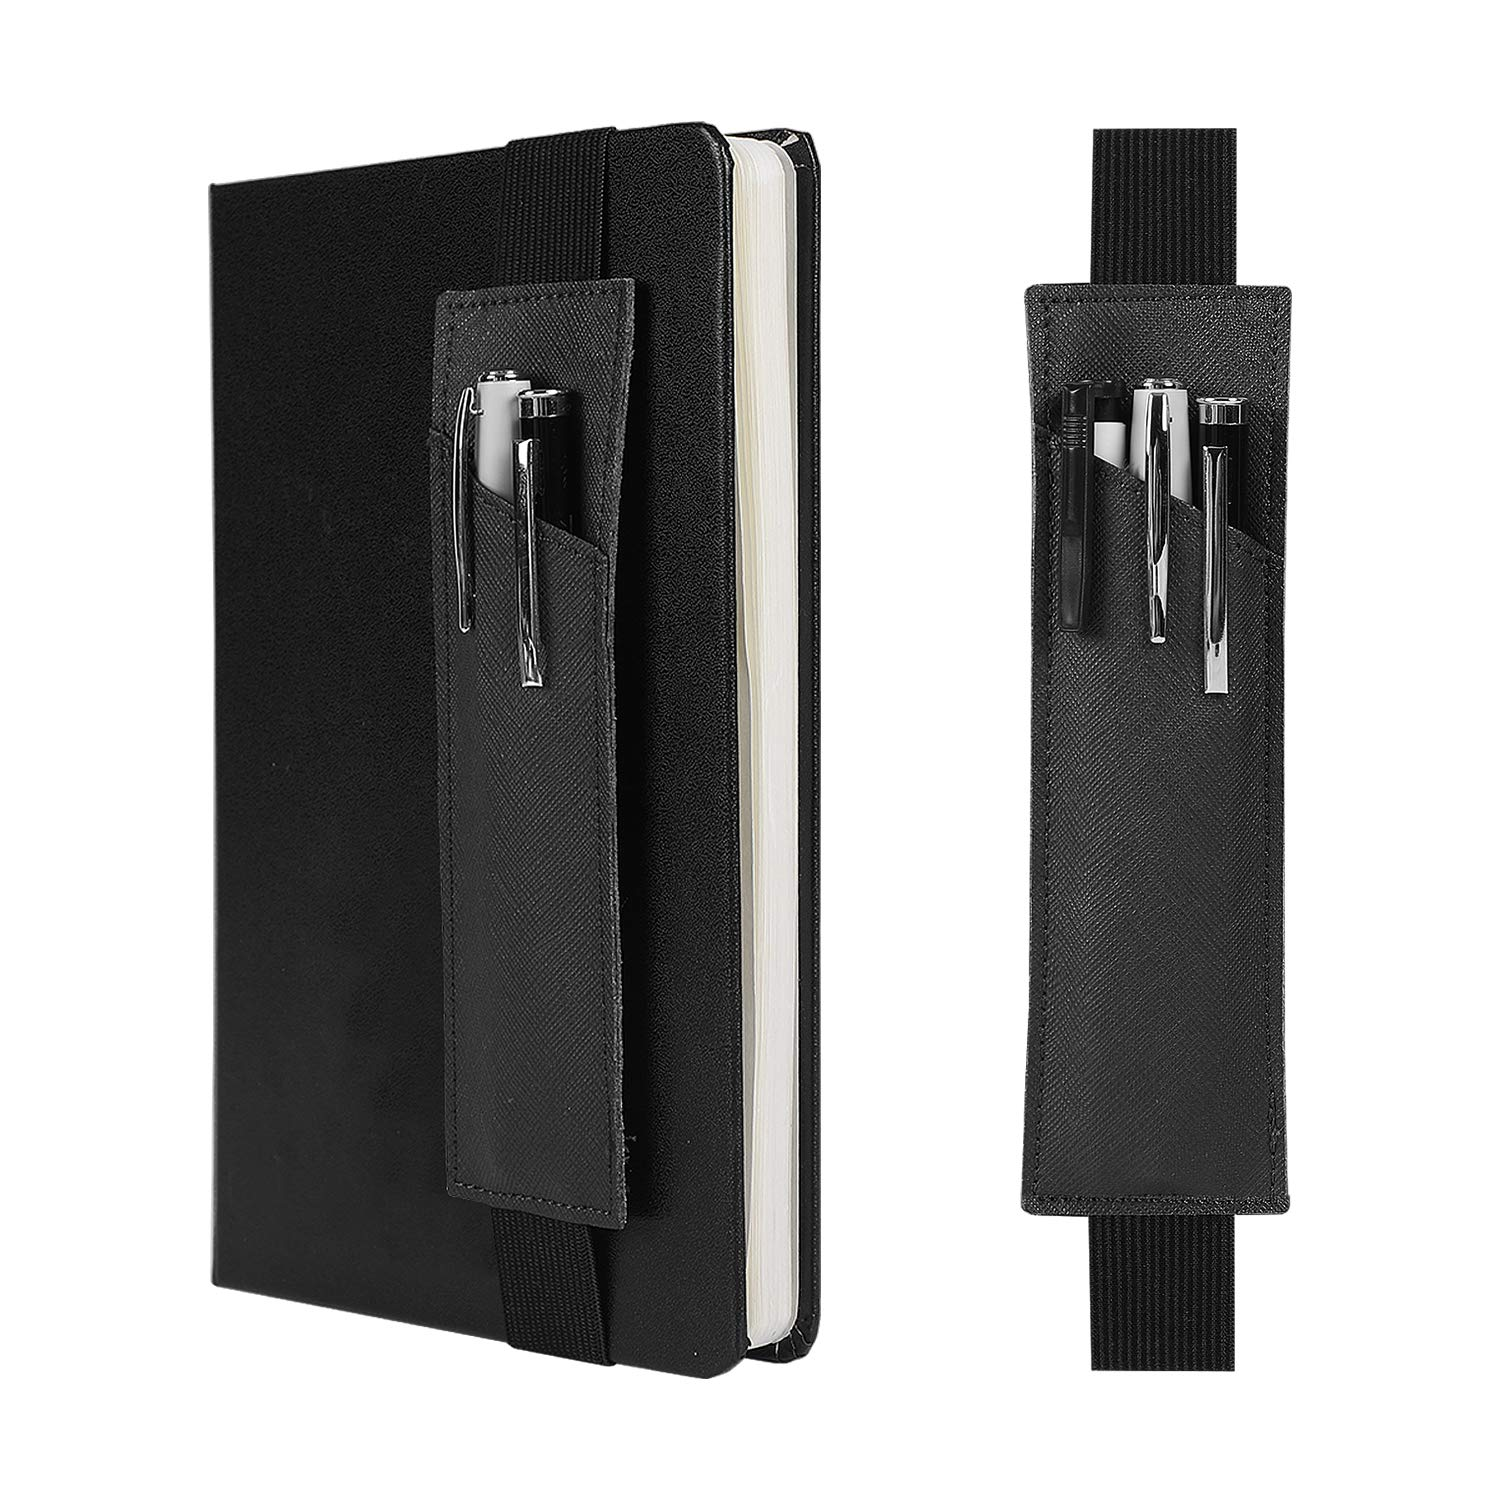 """2-Pack Leather Adjustable Elastic Band Pen Holder, Pencil Holder, Pen Sleeve Pouch, Pen Case for Hardcover Notebooks, Journals, Planners, Suitable for Heights from 8"""" to 11.5""""(Black)"""